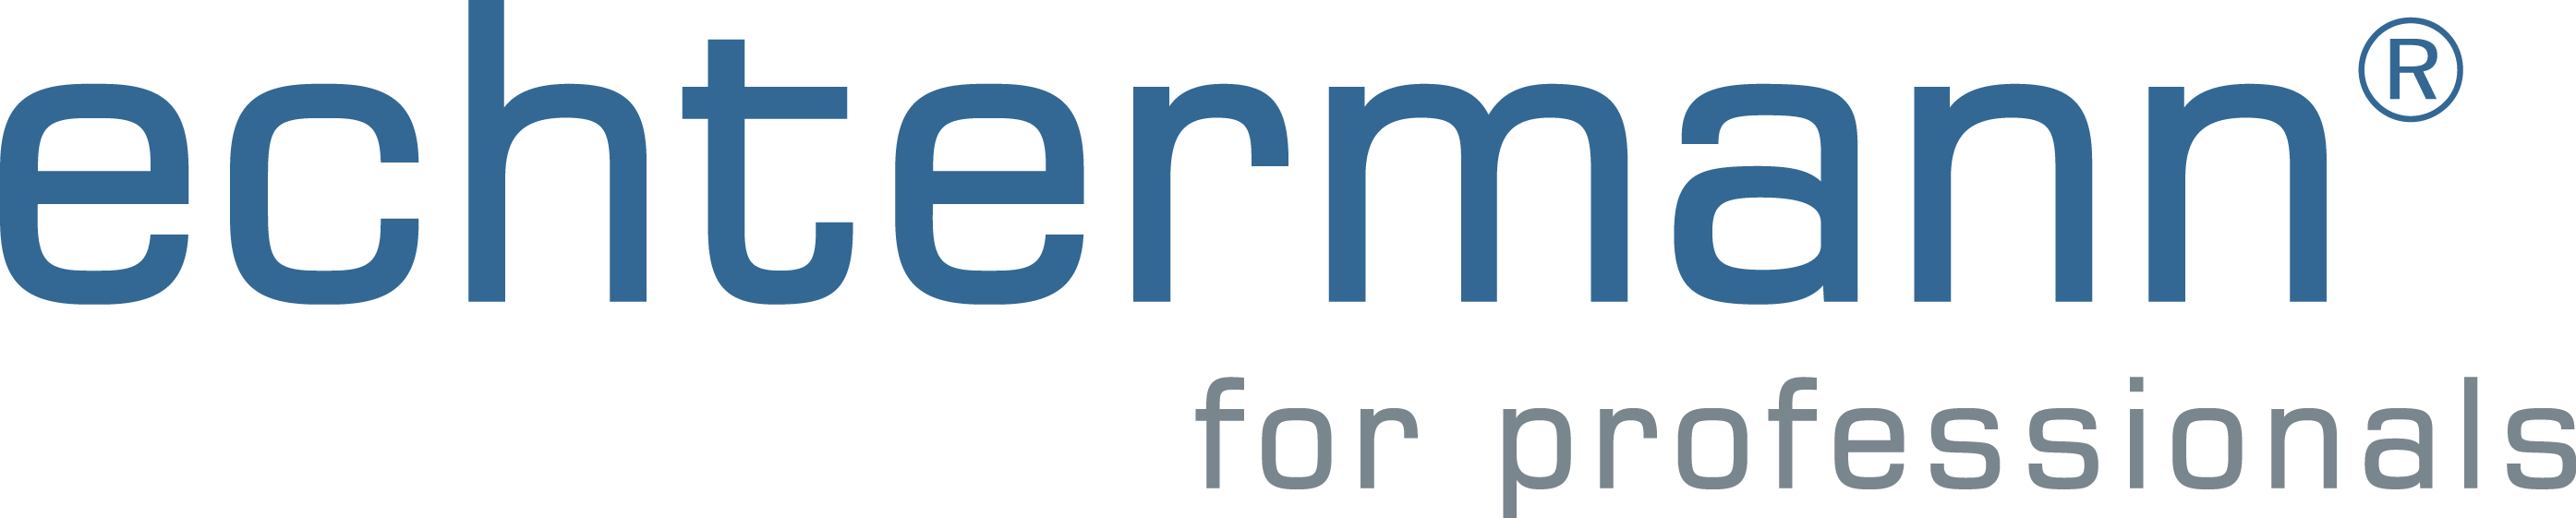 echtermann_logo_new